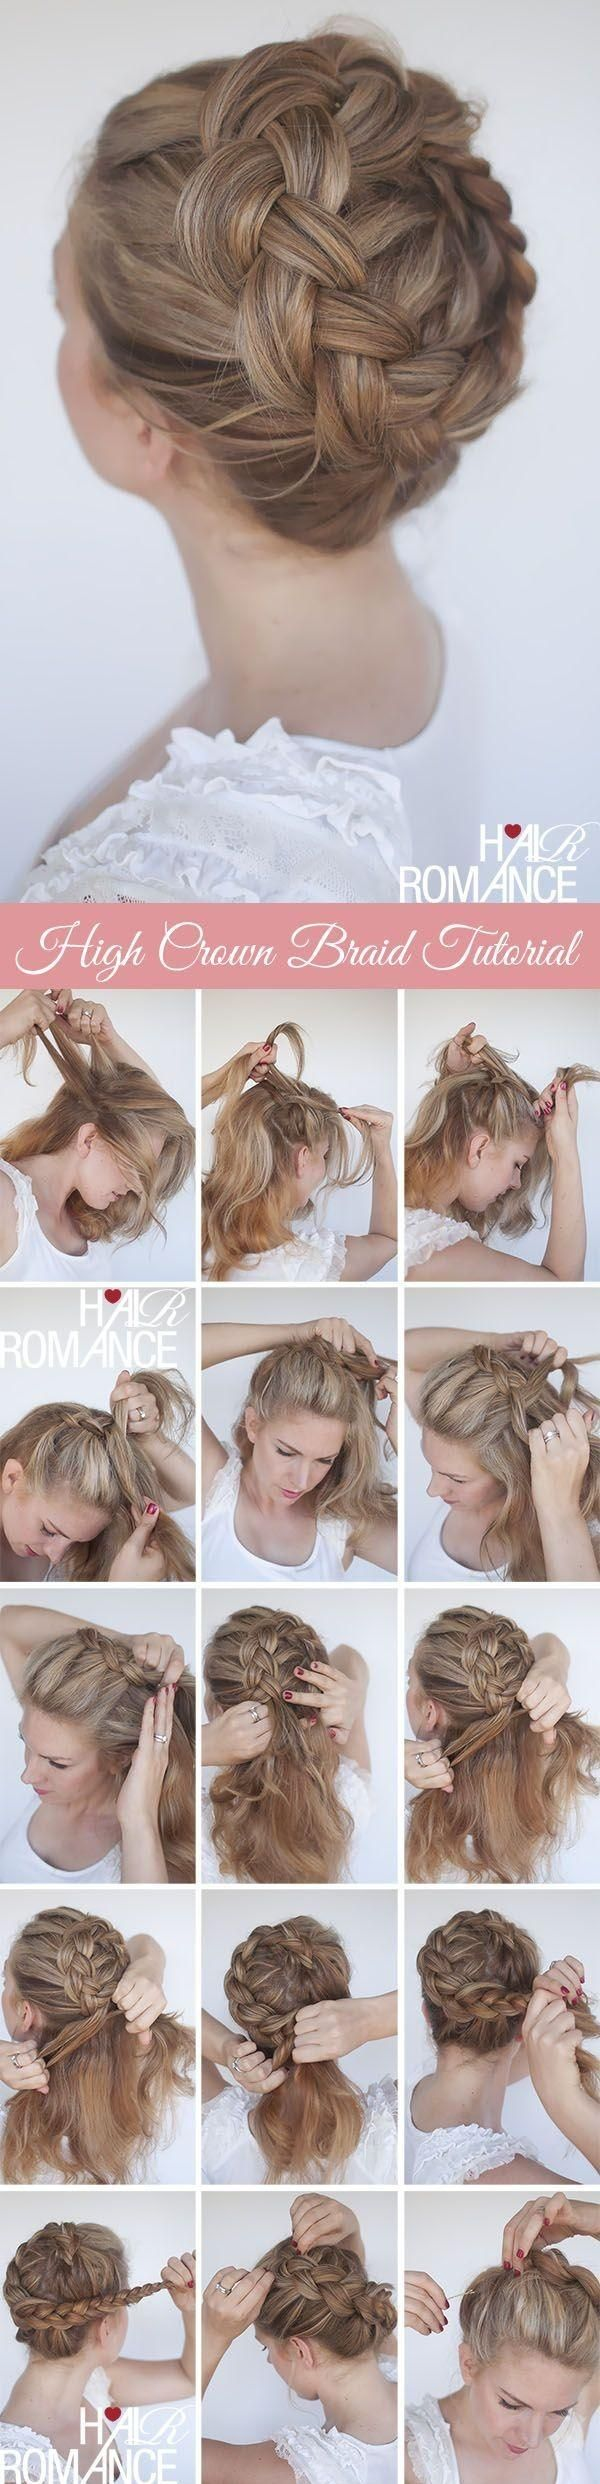 DIY High Crown Braid Tutorial #diy